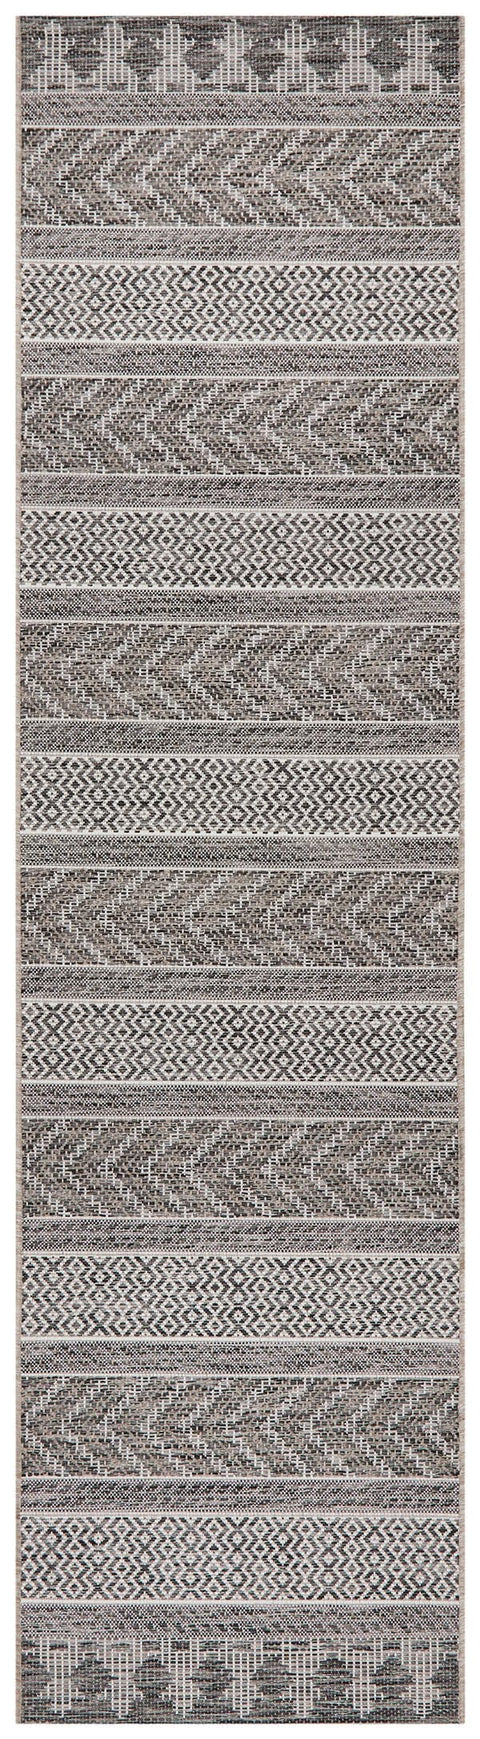 Tetela Grey Tribal Runner Rug